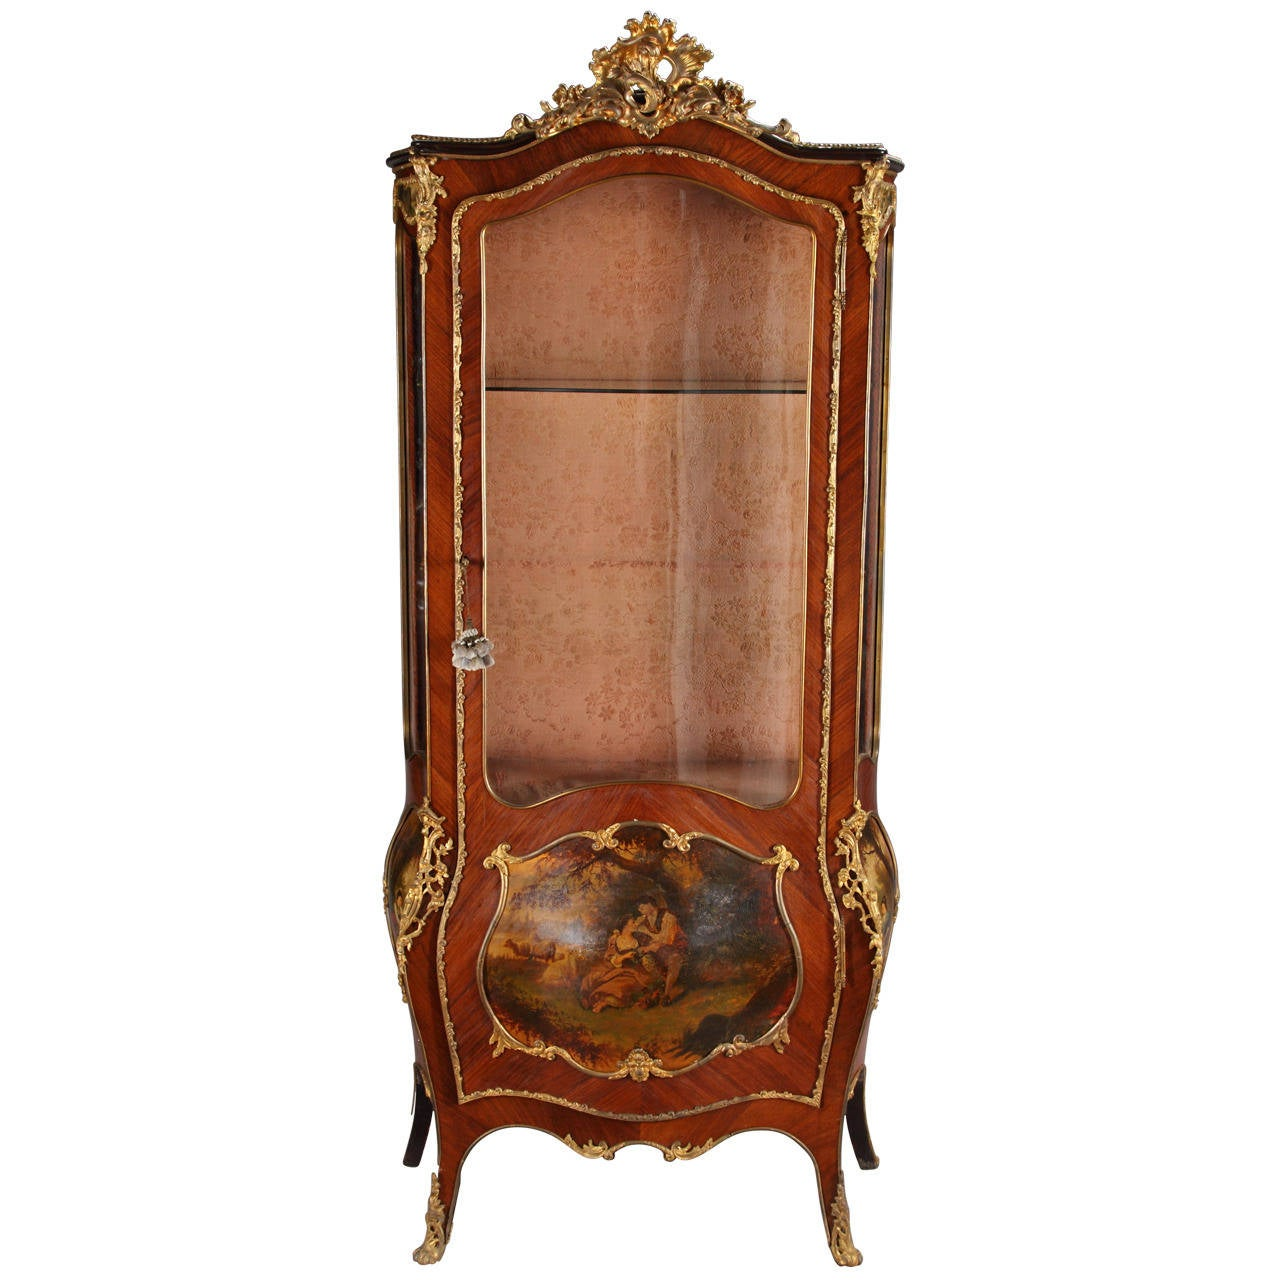 french louis xv style ormolu mounted vitrine at 1stdibs. Black Bedroom Furniture Sets. Home Design Ideas